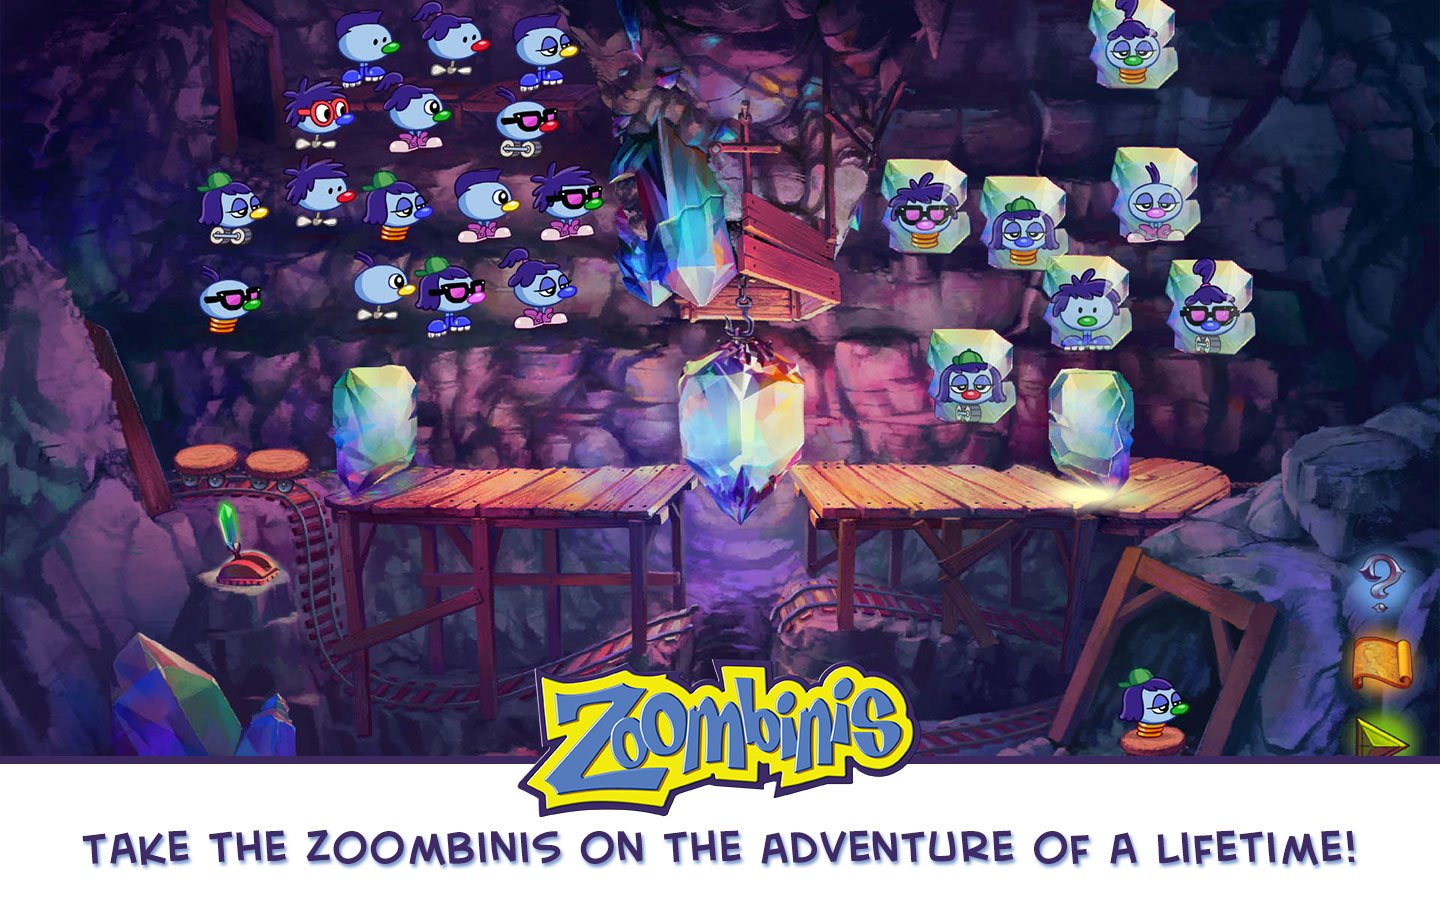 Review Zoombinis: The Logic Puzzle